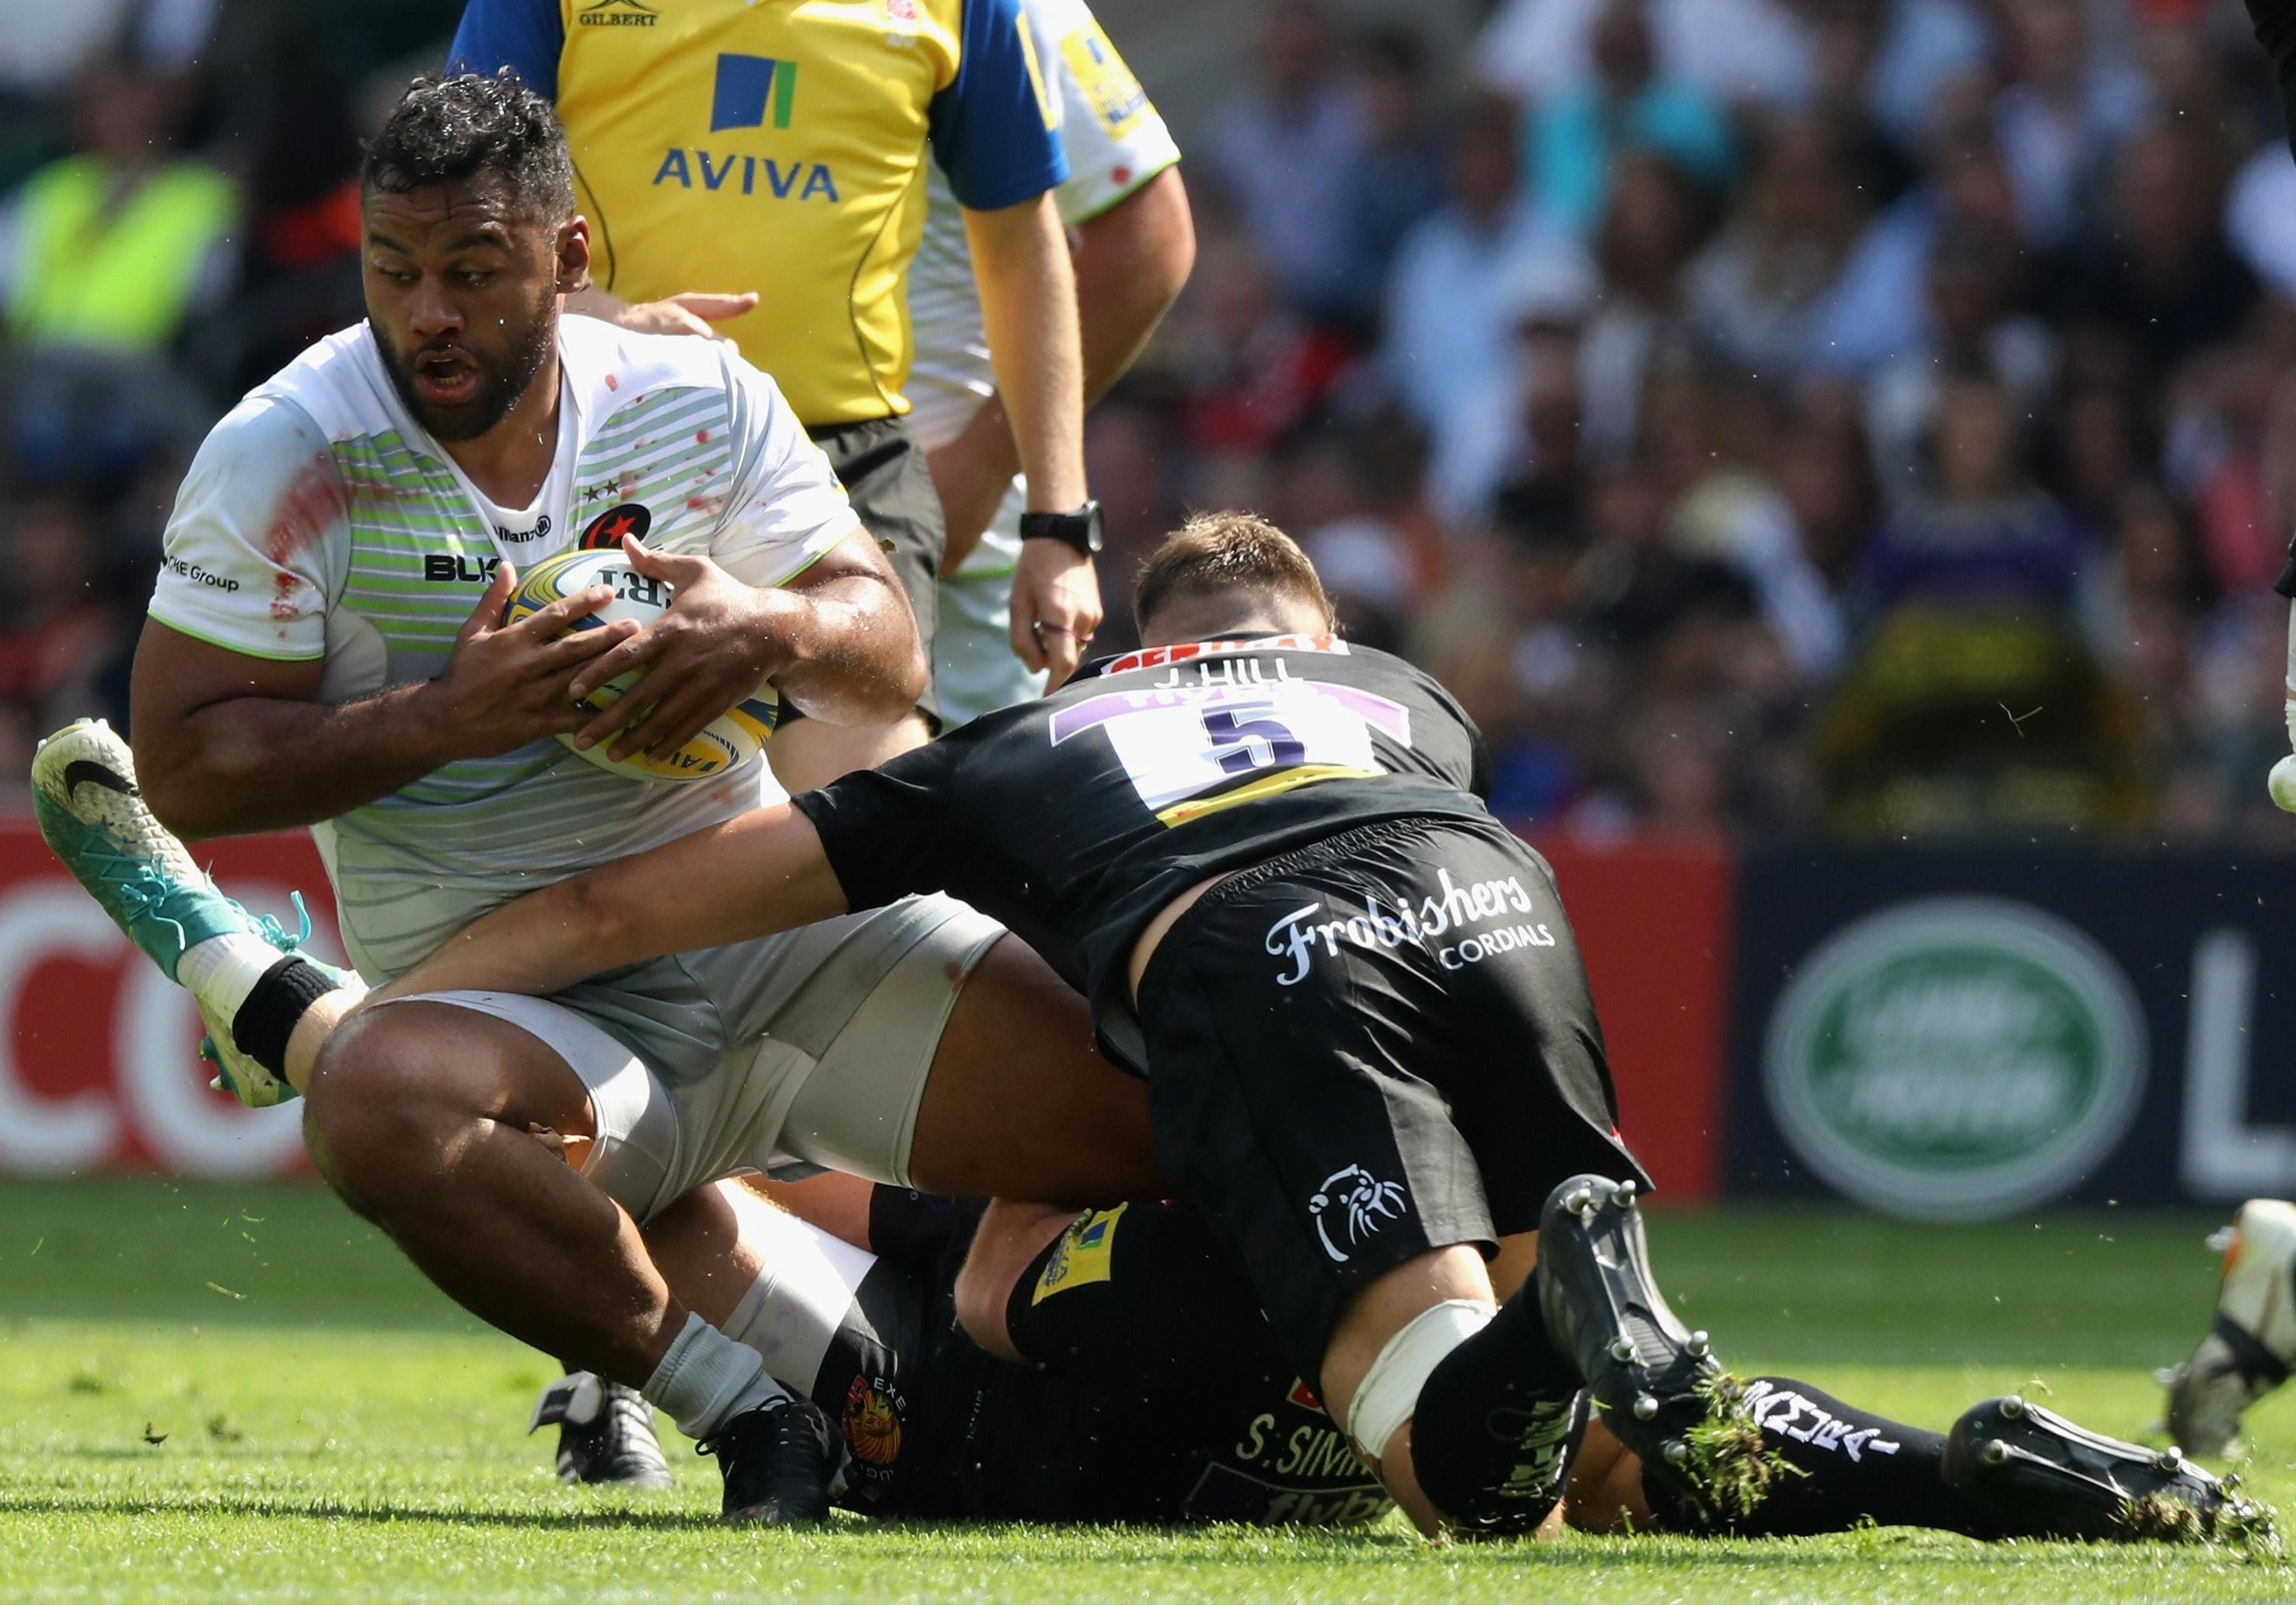 Rugby ace Billy Vunipola is one of the game's biggest names